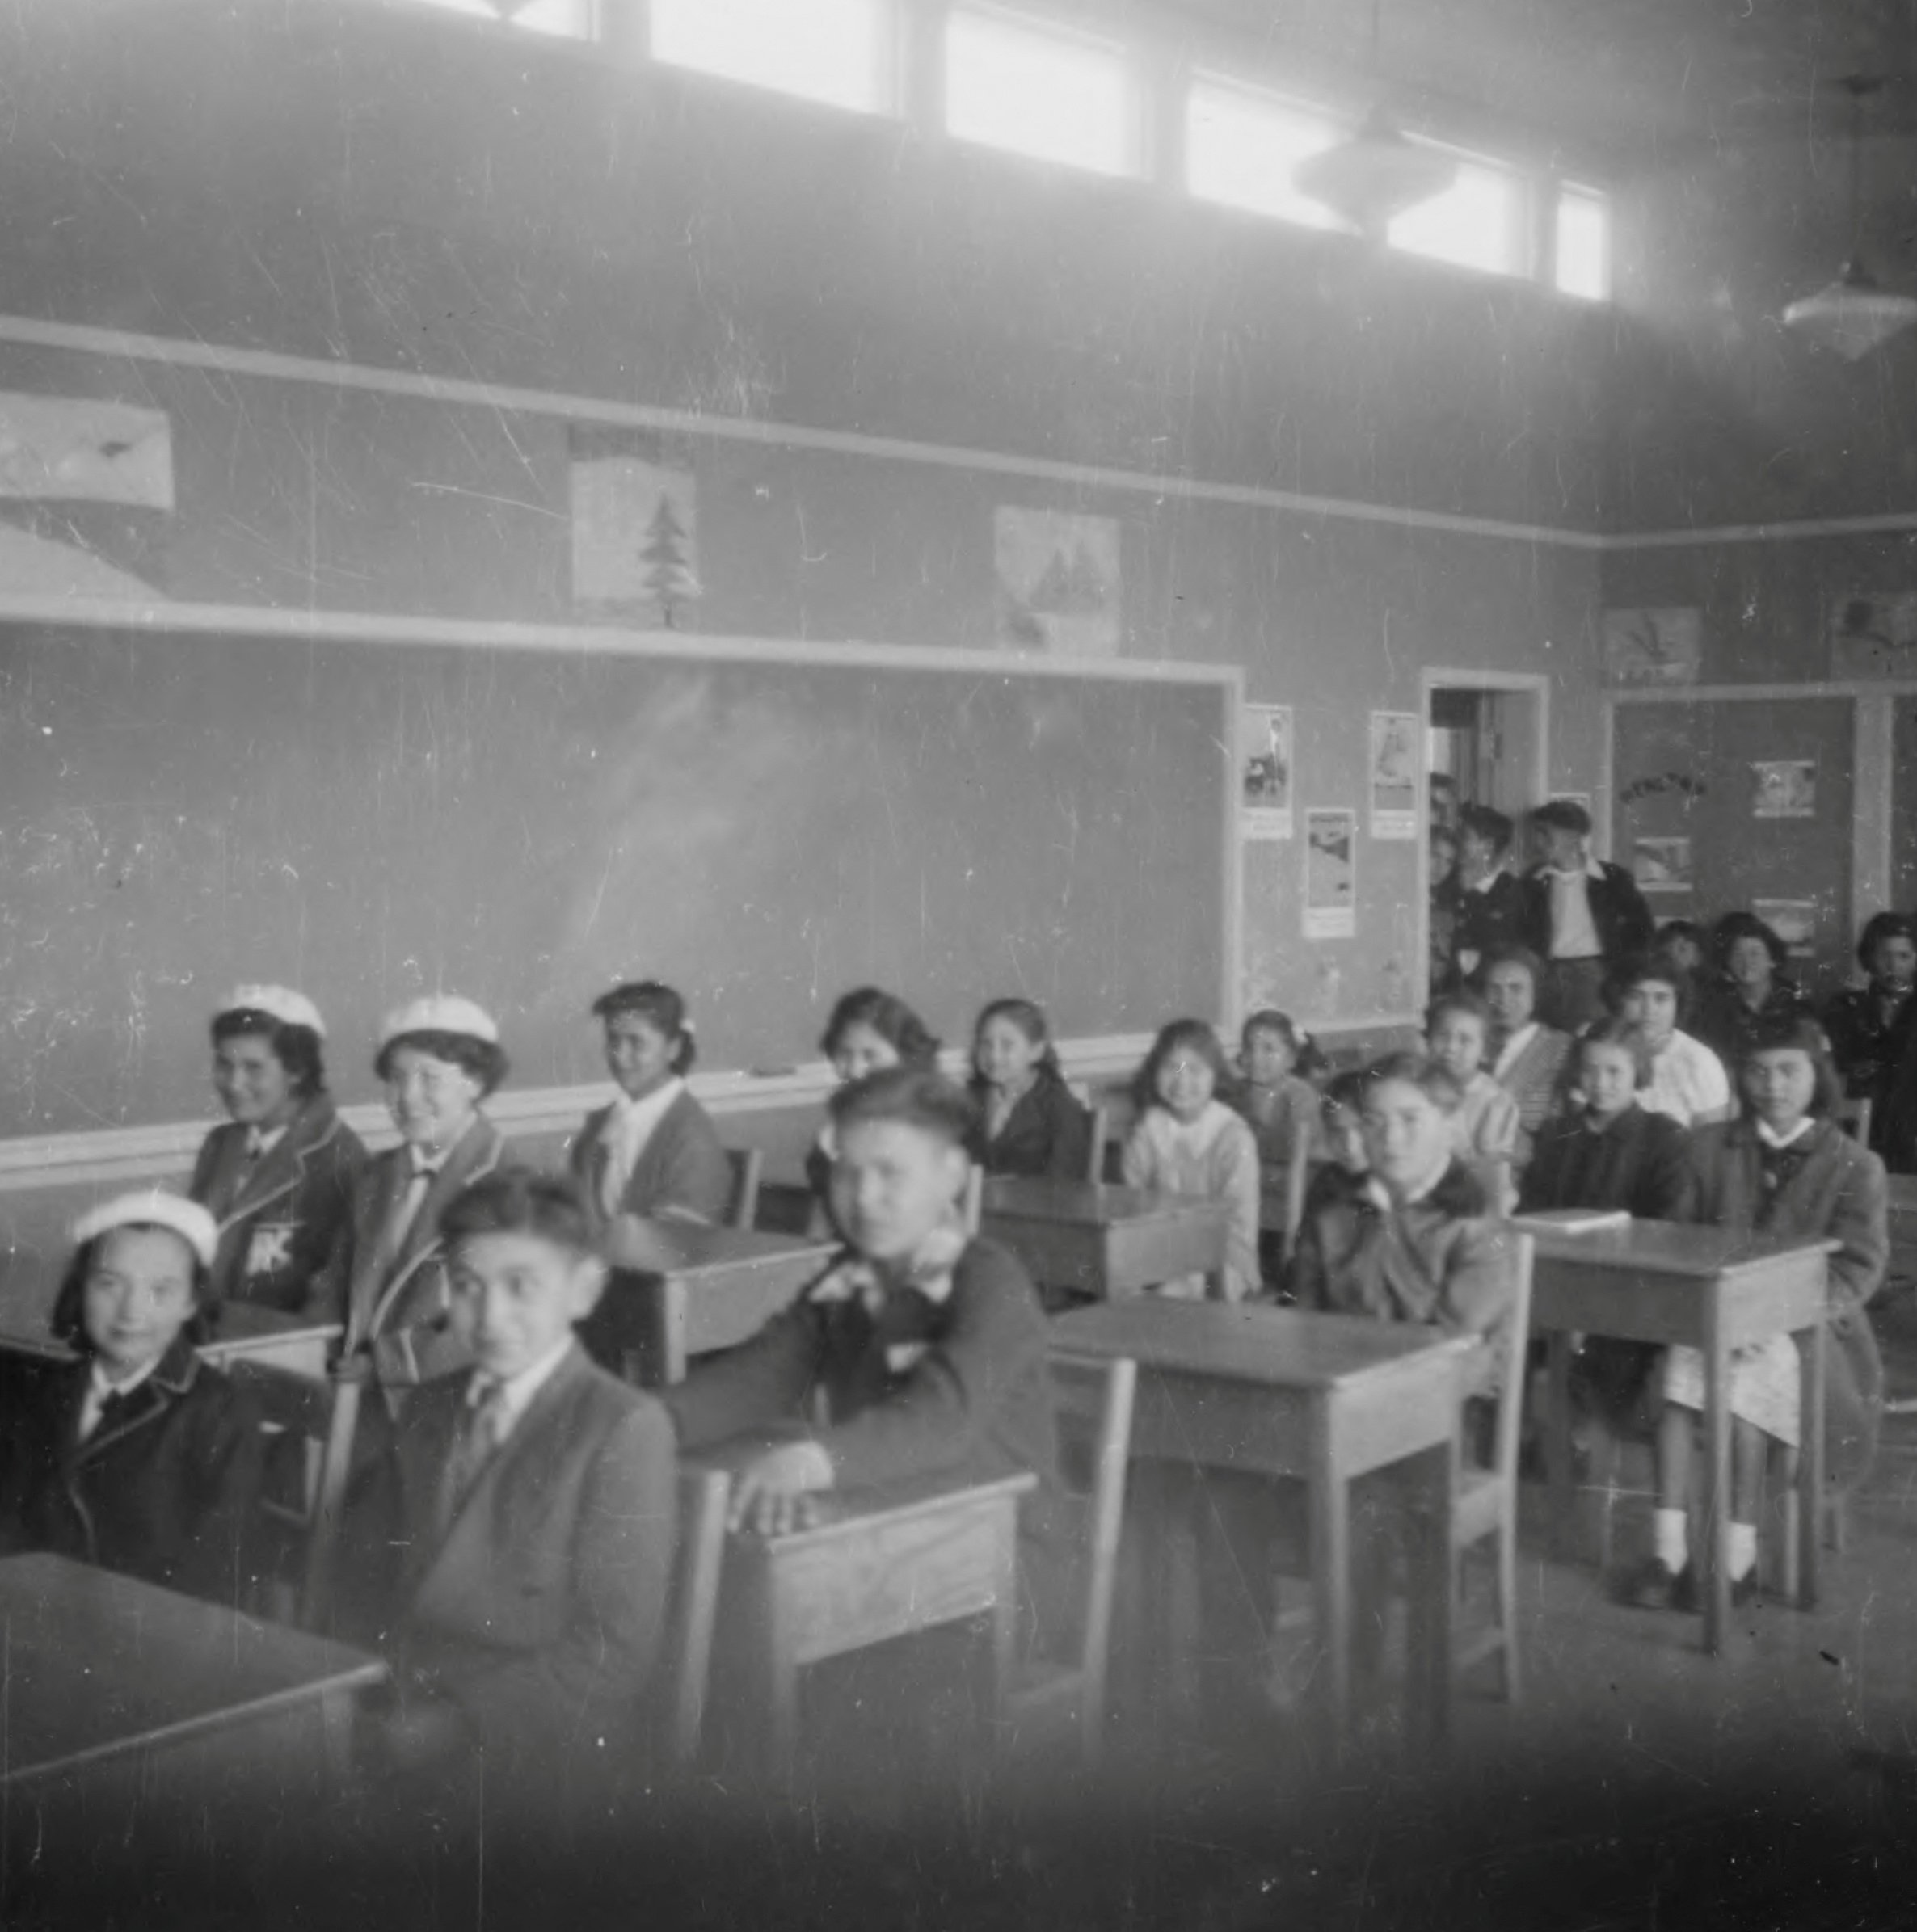 Students sit in a classroom at the Kuper Island Indian Residential School, which according to the National Center for Truth and Reconciliation, operated between 1890-1975, near Chemainus, British Columbia, Canada, in an undated photograph. (REUTERS Photo)